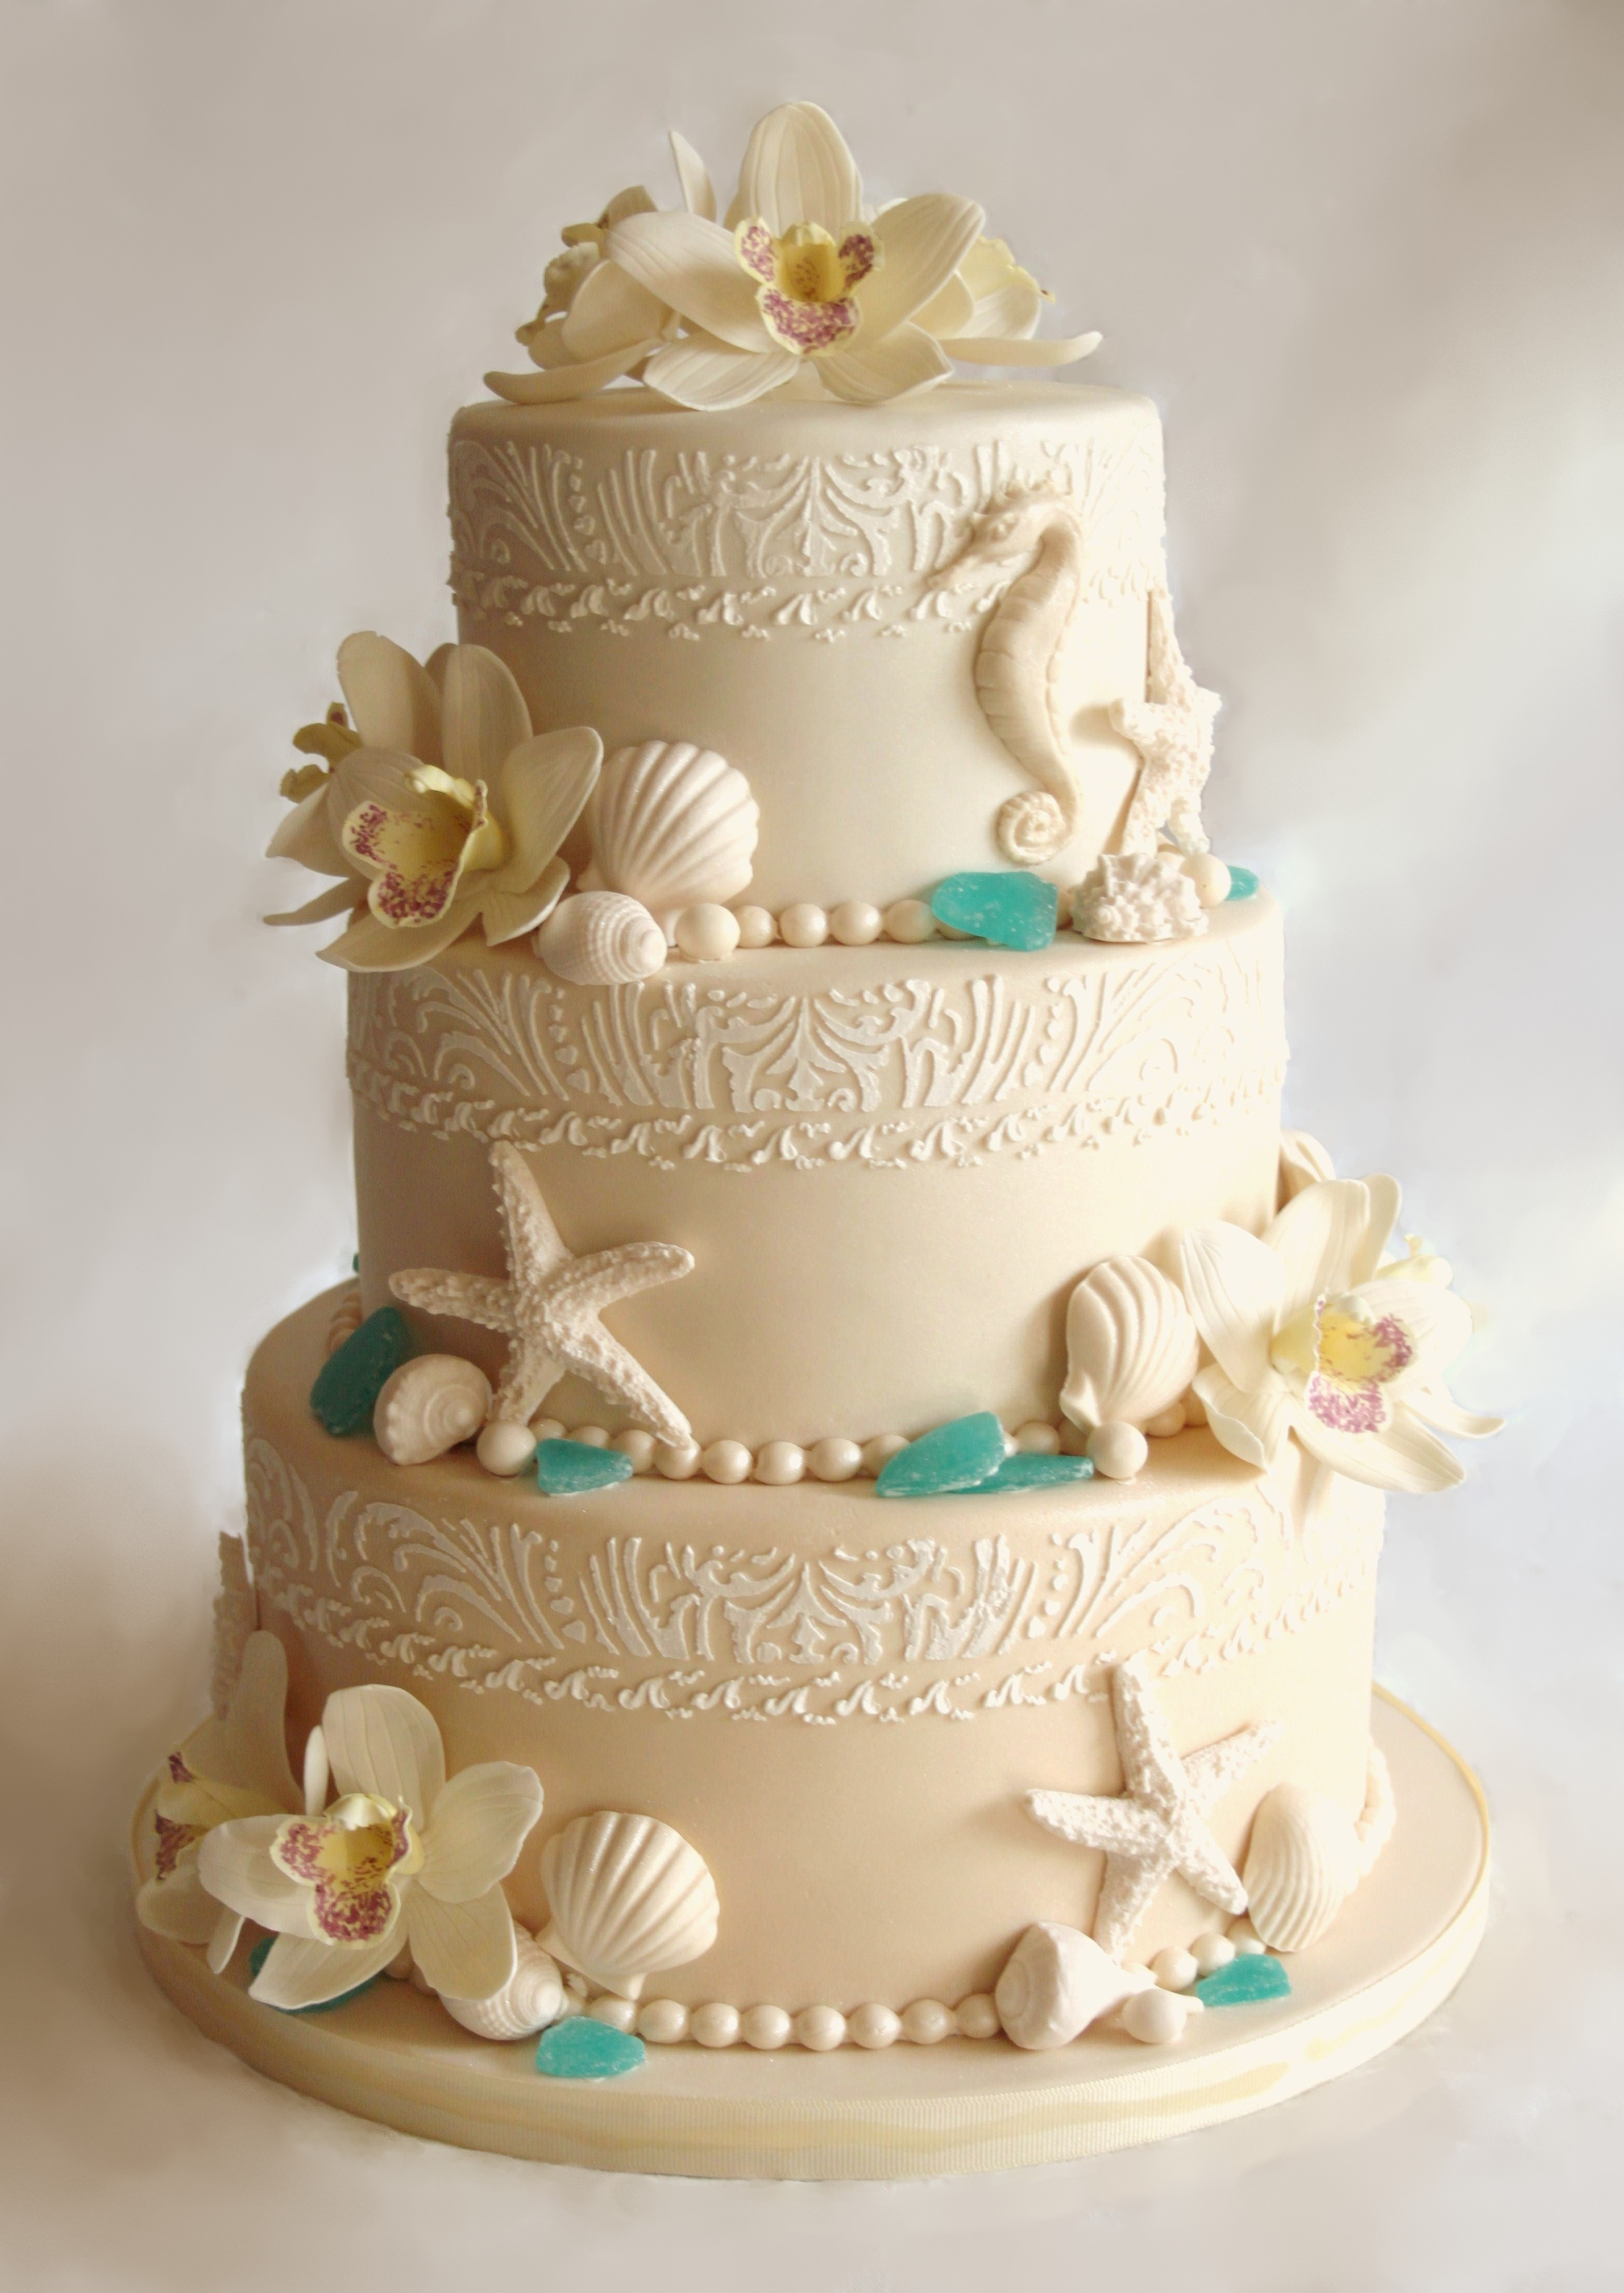 Wedding Cakes Beach Theme  30 ULTIMATE WEDDING CAKES TO STEAL THE SHOW